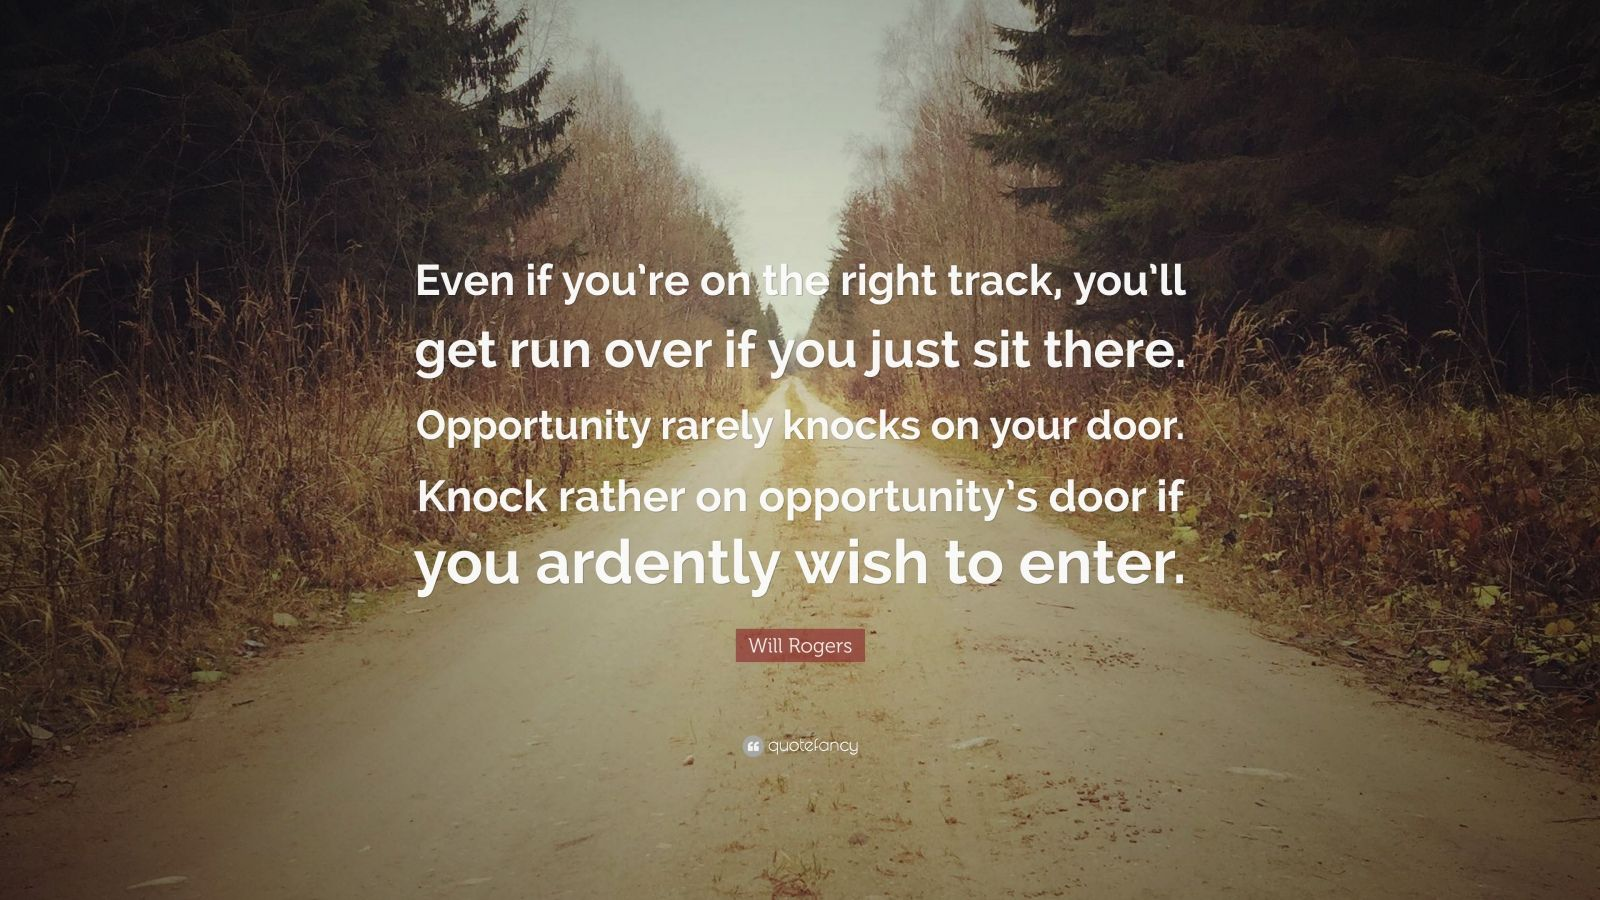 """Will Rogers Quote: """"Even if you're on the right track, you'll get run over if you just sit there. Opportunity rarely knocks on your door. Knock rather on opportunity's door if you ardently wish to enter."""""""